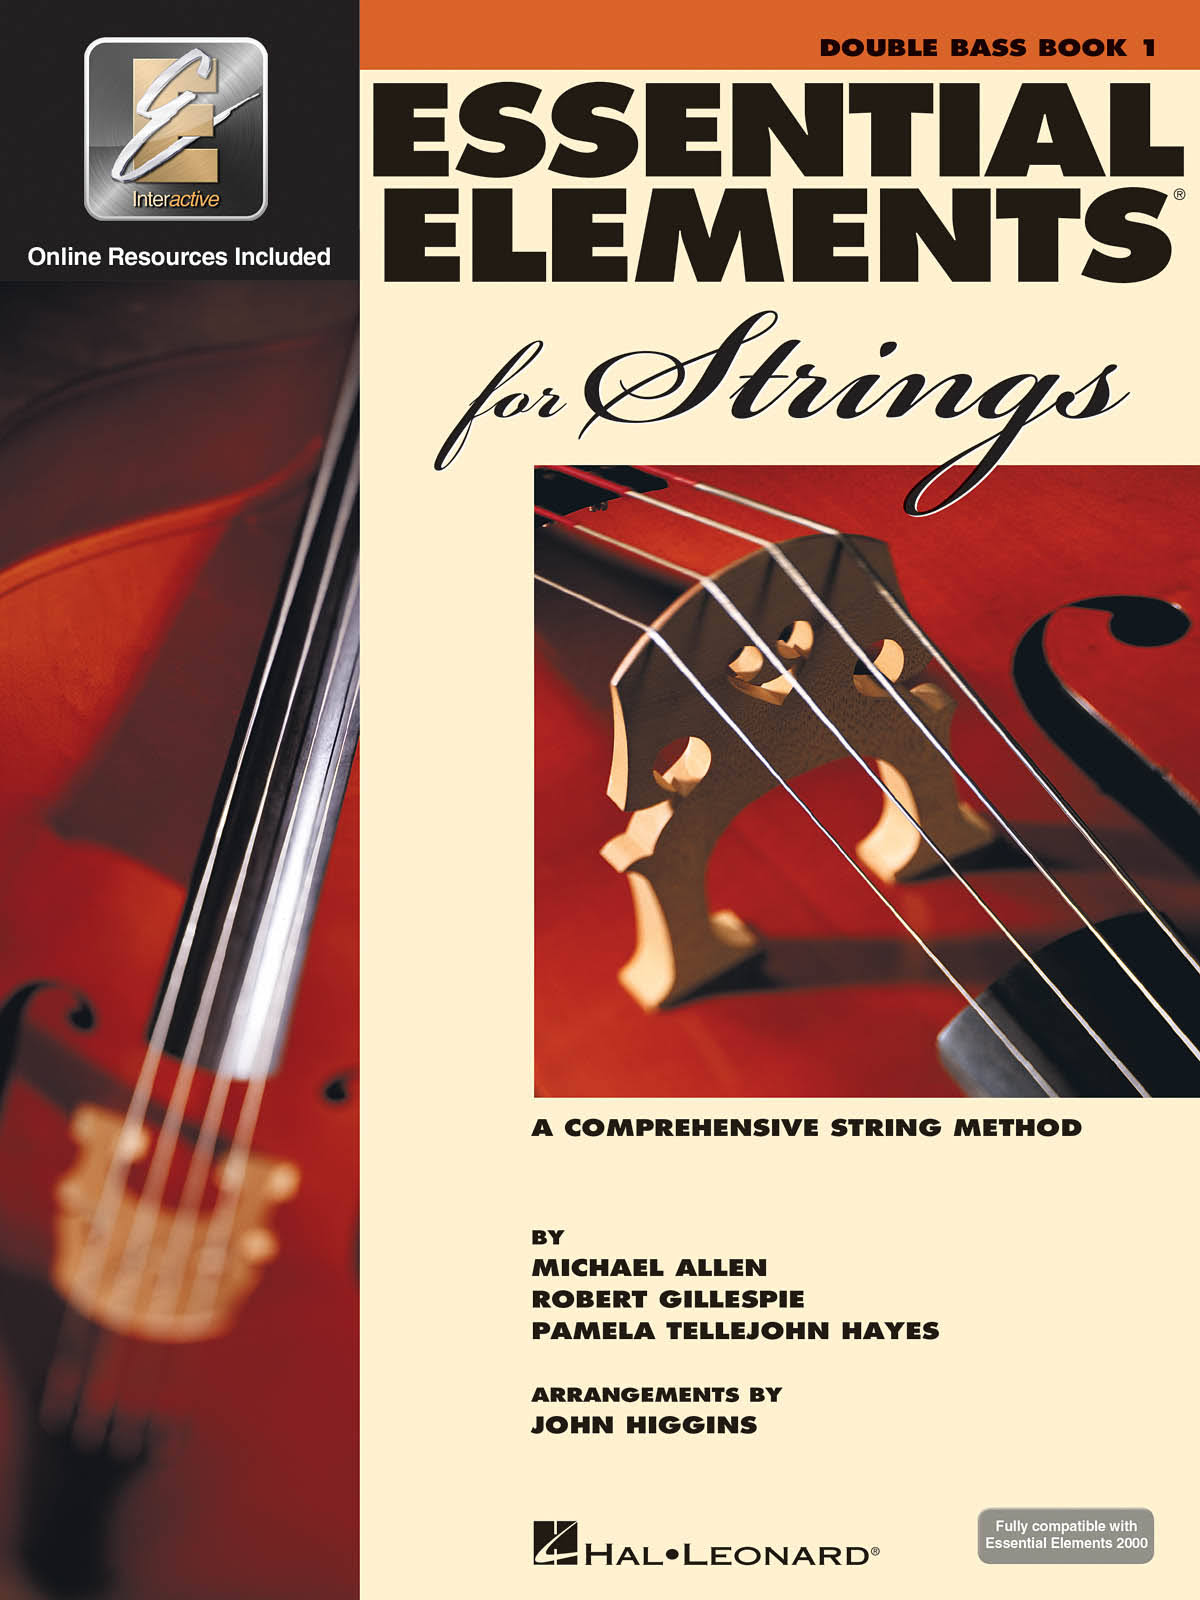 Essential Elements for Strings 2000 Book 1 - Hal Leonard